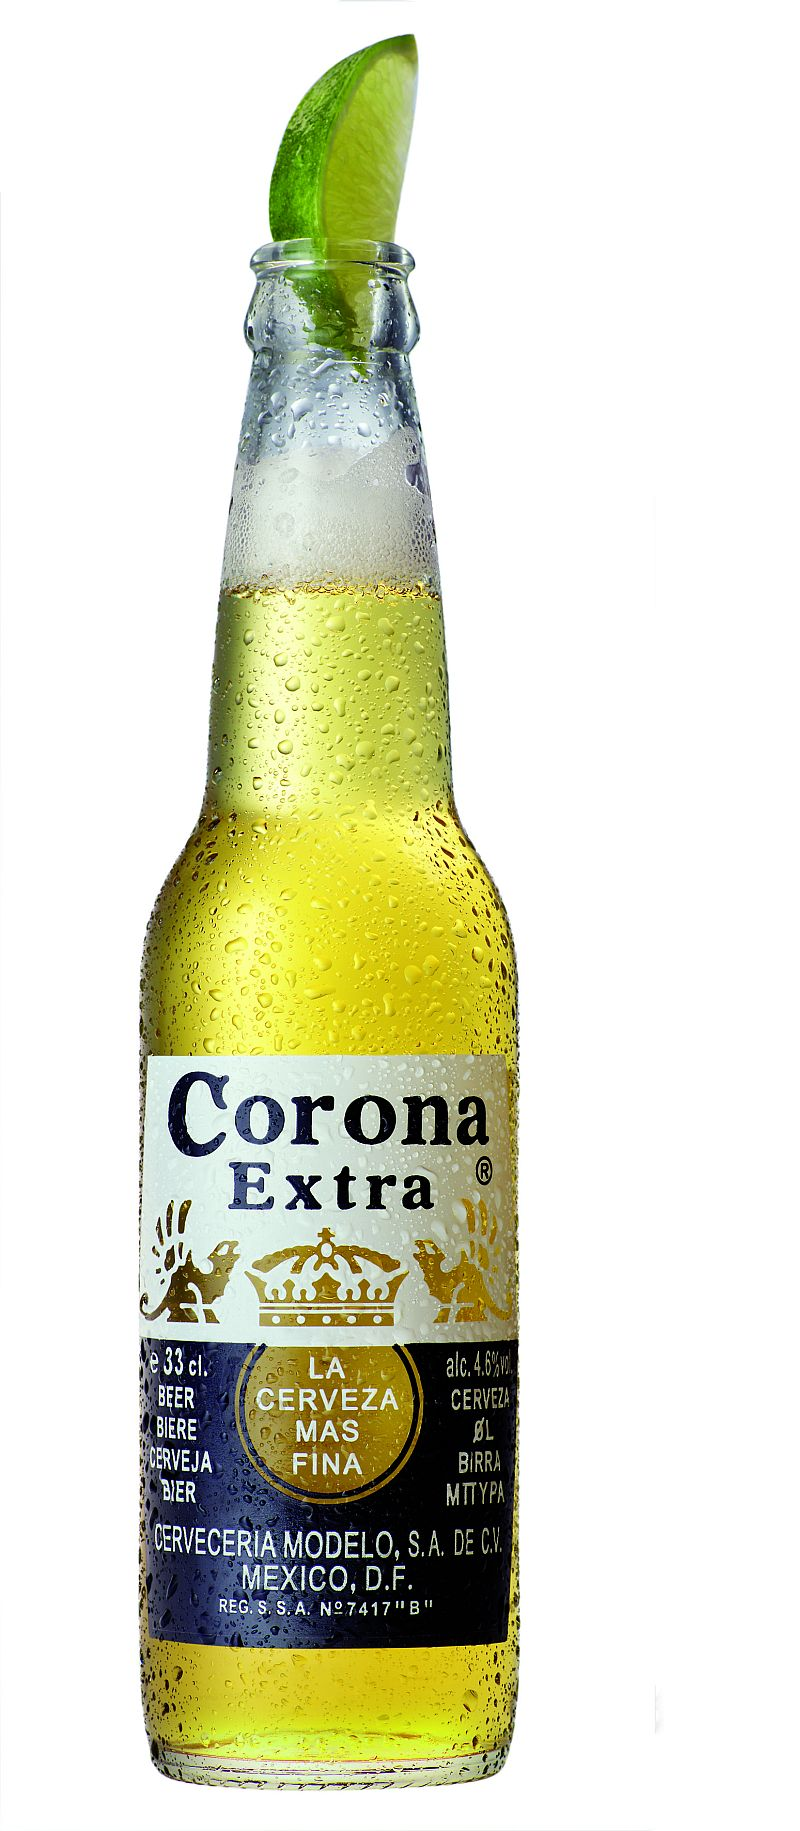 http://popsop.ru/wp-content/uploads/corona_save_the_beach_bottle.jpg